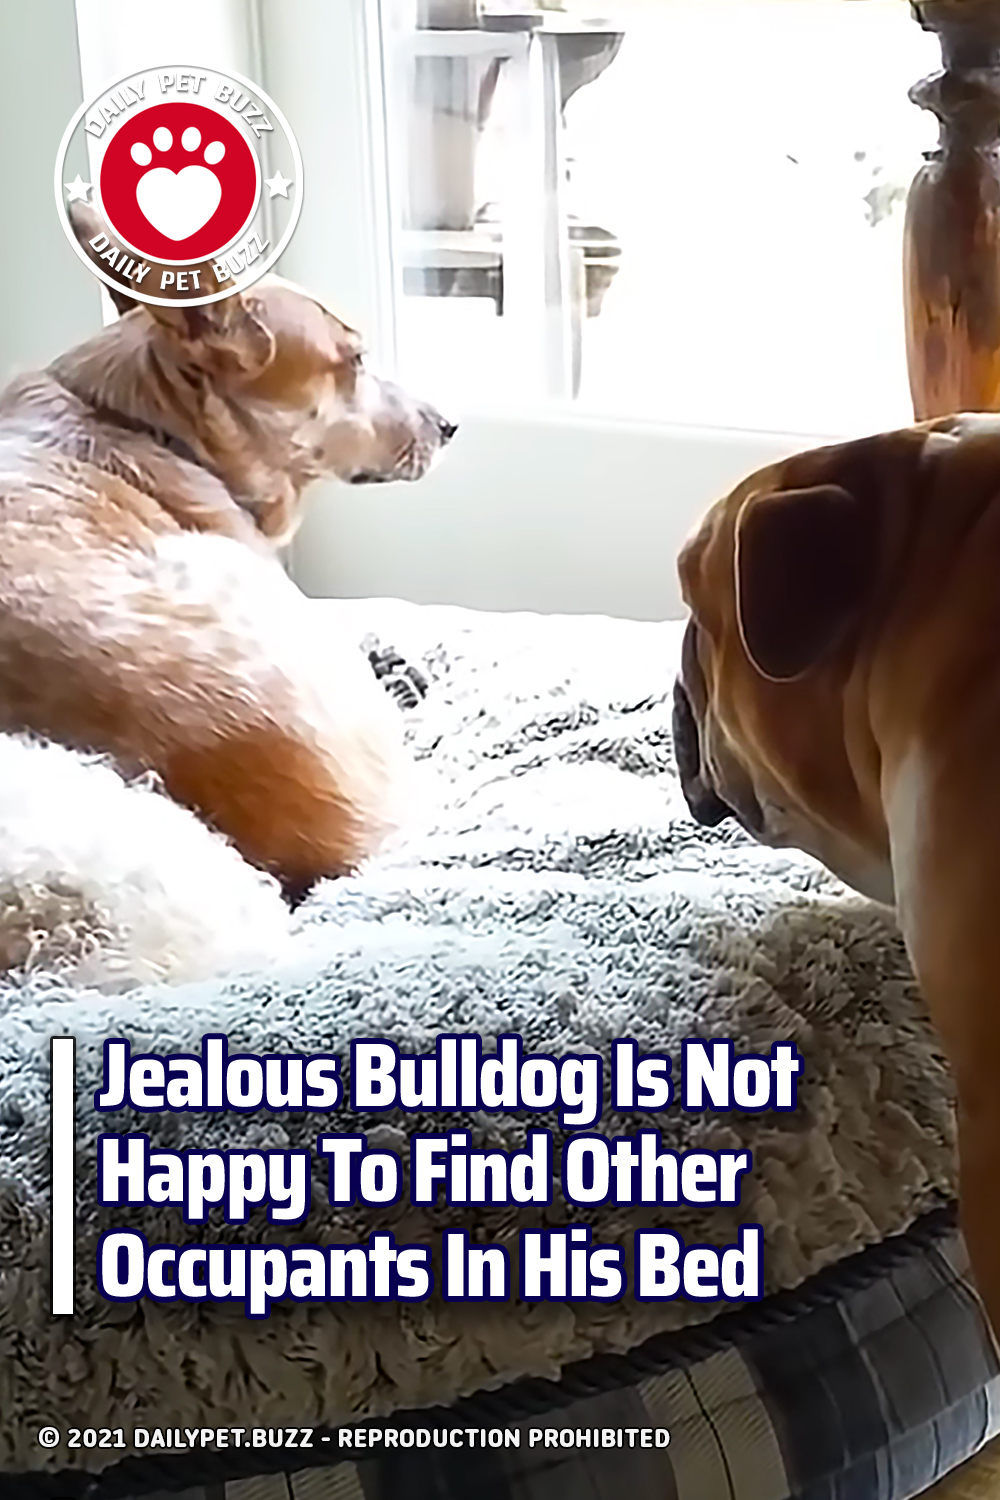 Jealous Bulldog Is Not Happy To Find Other Occupants In His Bed